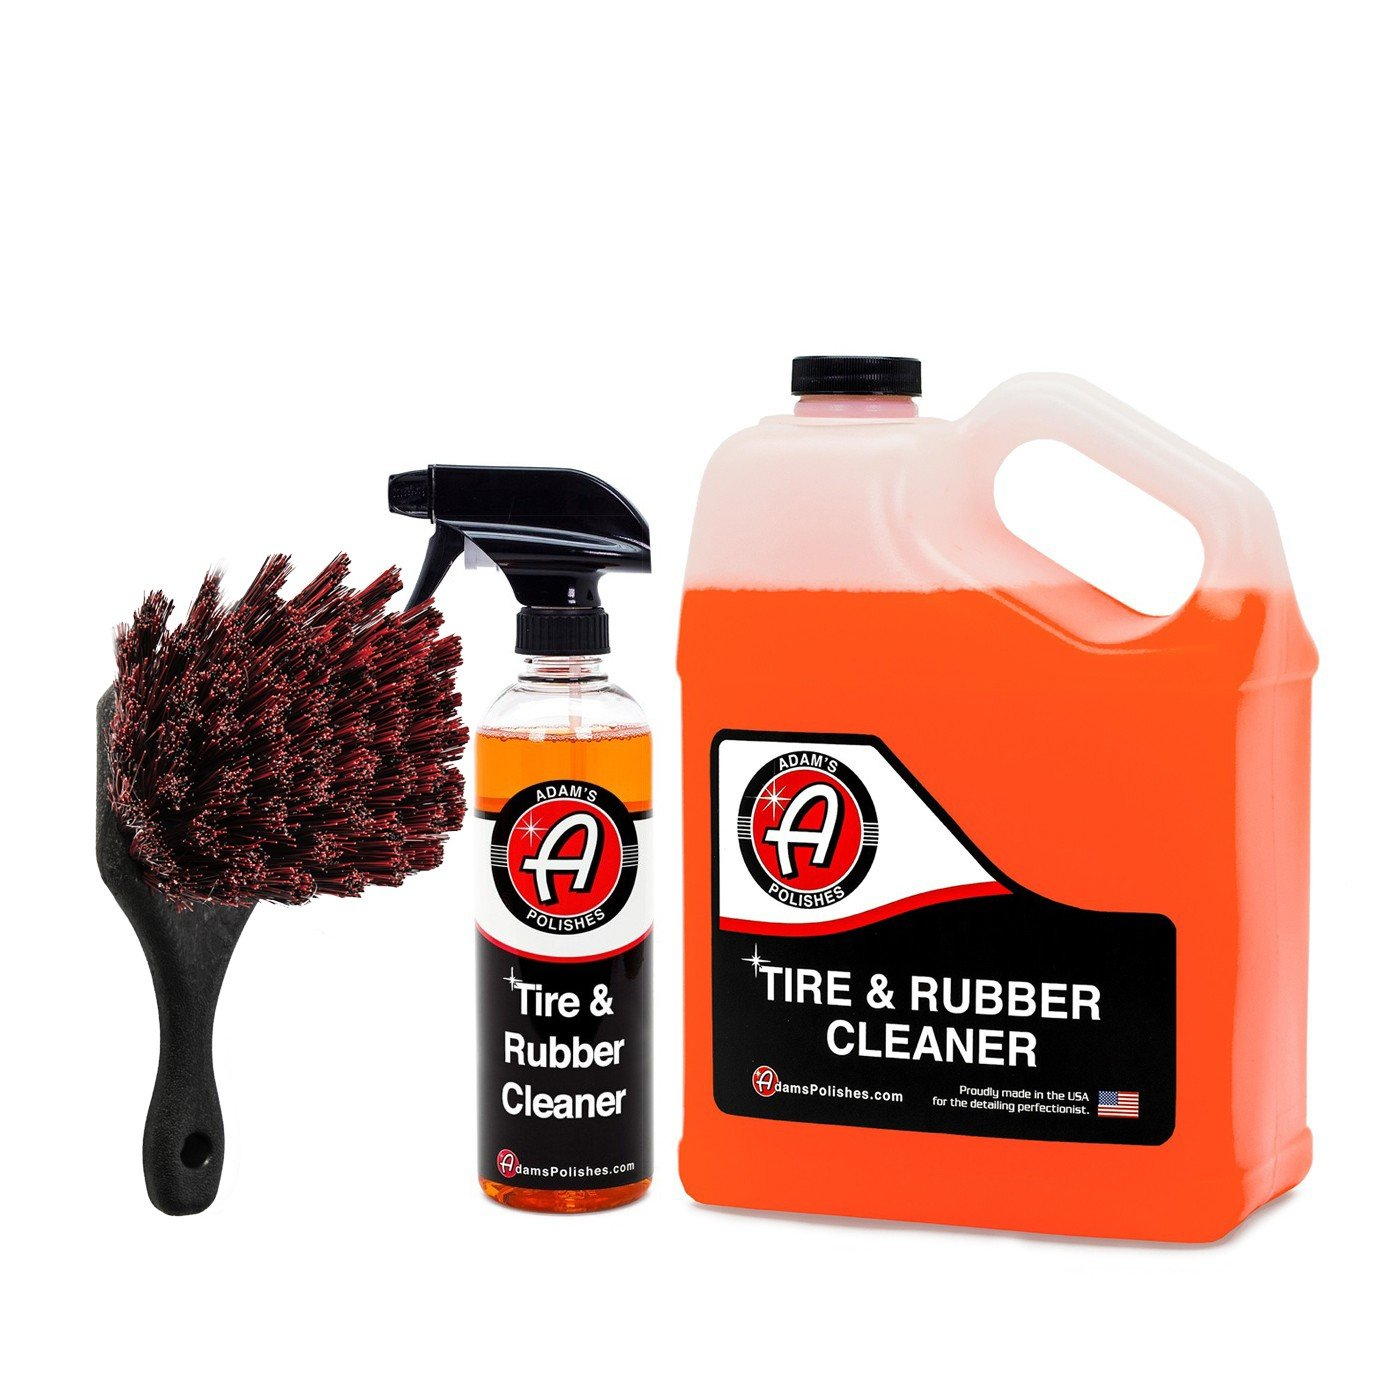 Adam's Tire & Rubber Cleaner - Removes Discoloration from Tires Quickly - Works Great on Tires, Rubber & Plastic Trim, and Rubber Floor Mats (Collection)